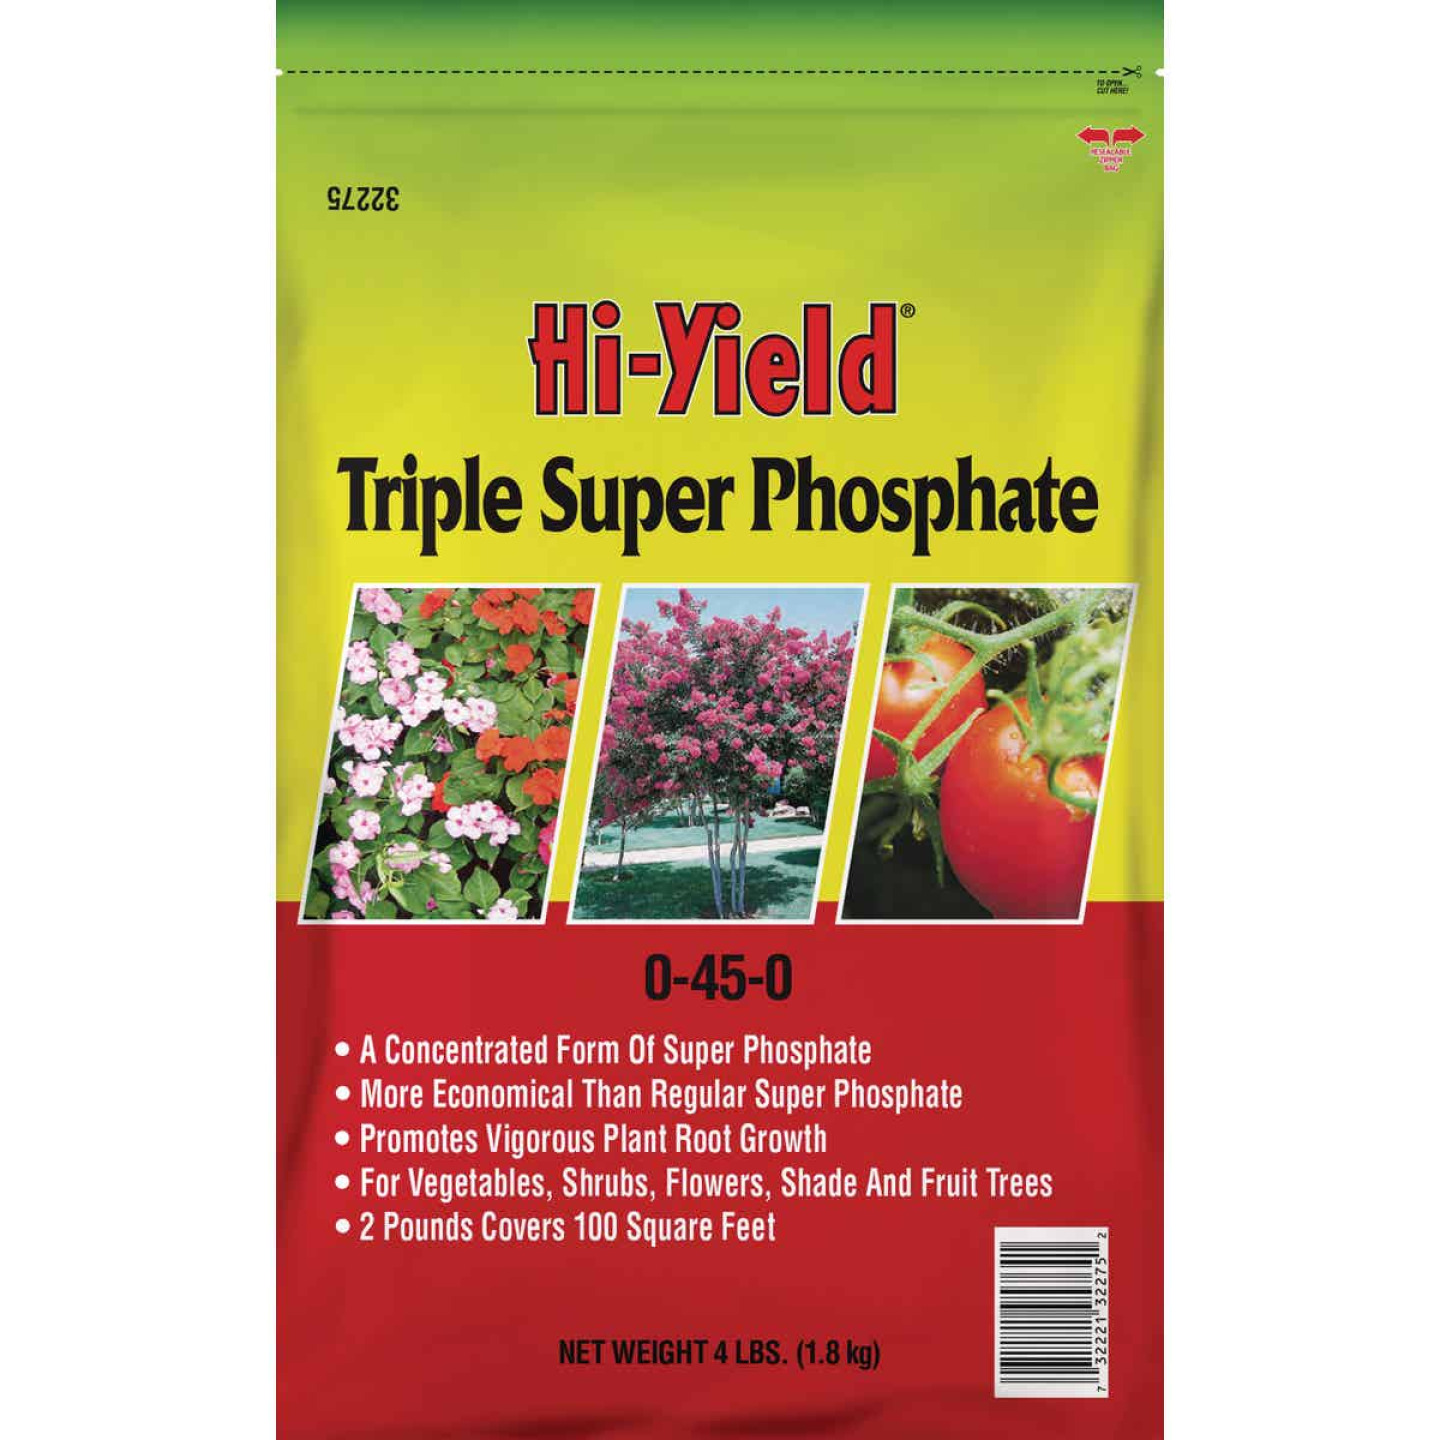 Hi-Yield 4 Lb. 0-45-0 Triple Super Phosphate Dry Plant Food Image 1